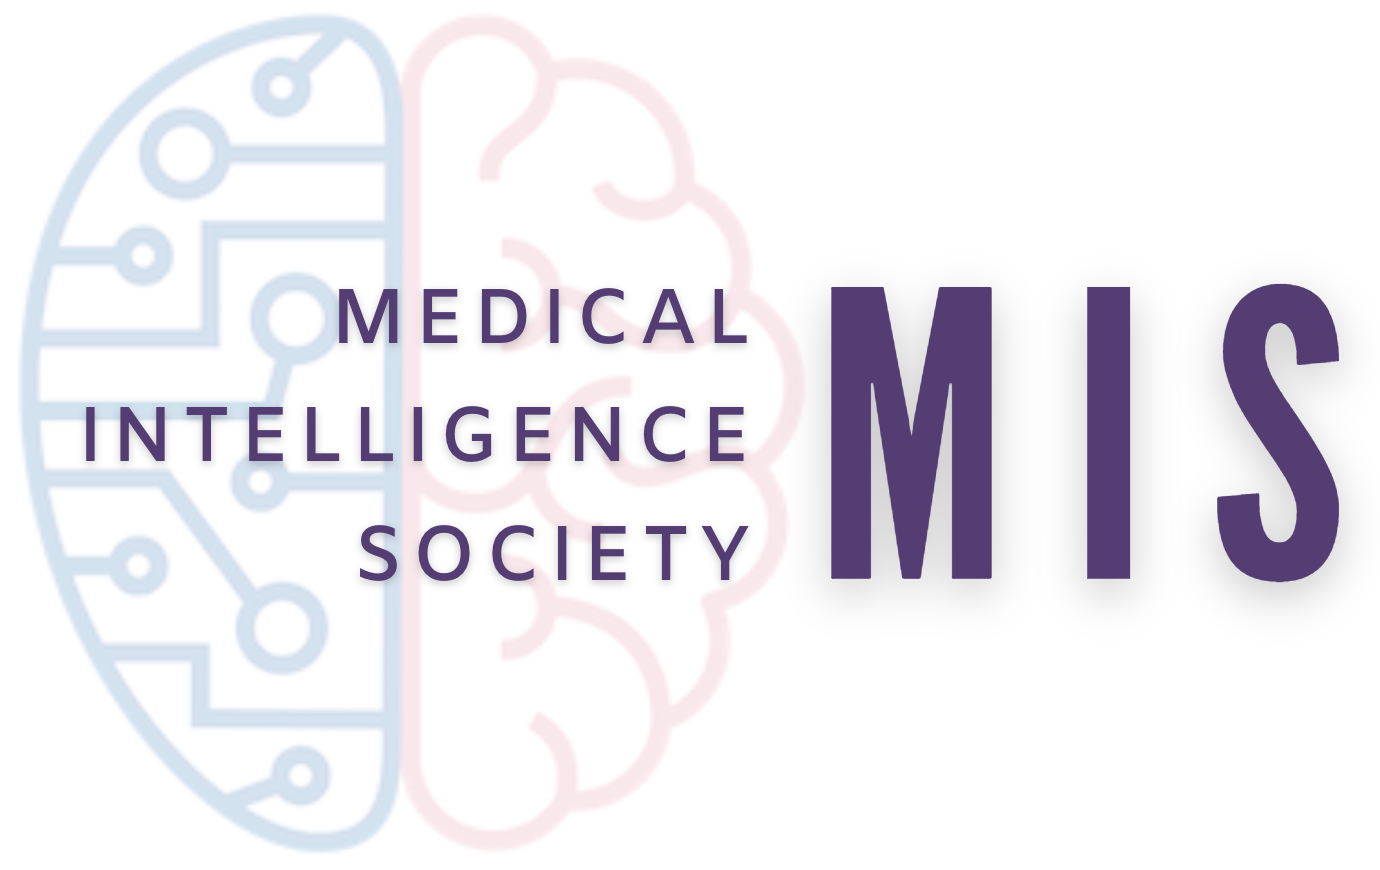 Medical Intelligence Society MIS